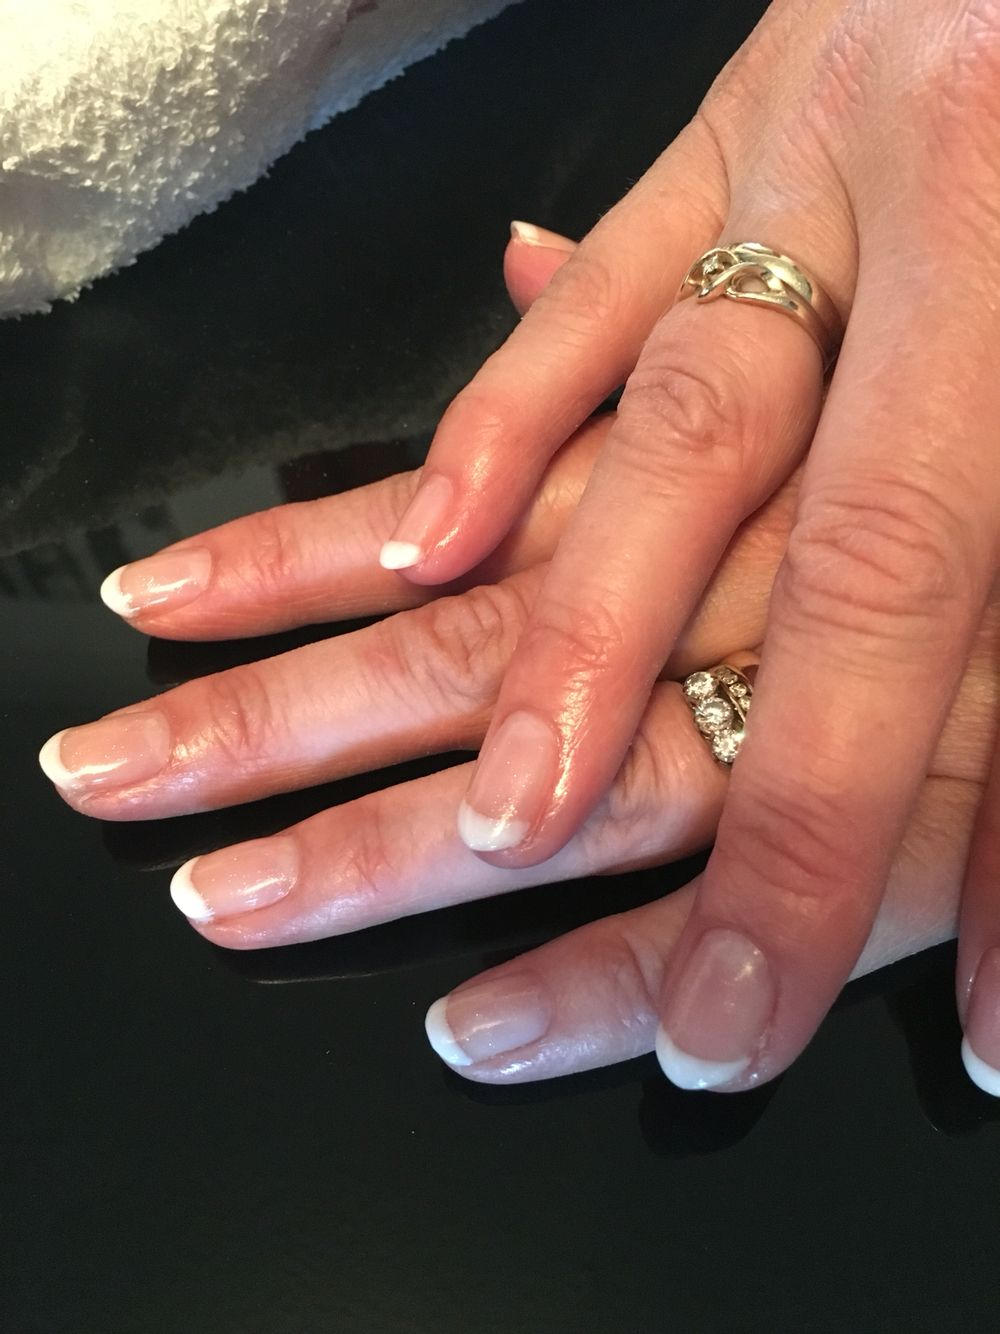 French manicure gel nails | My nail\'s | Pinterest | Manicure